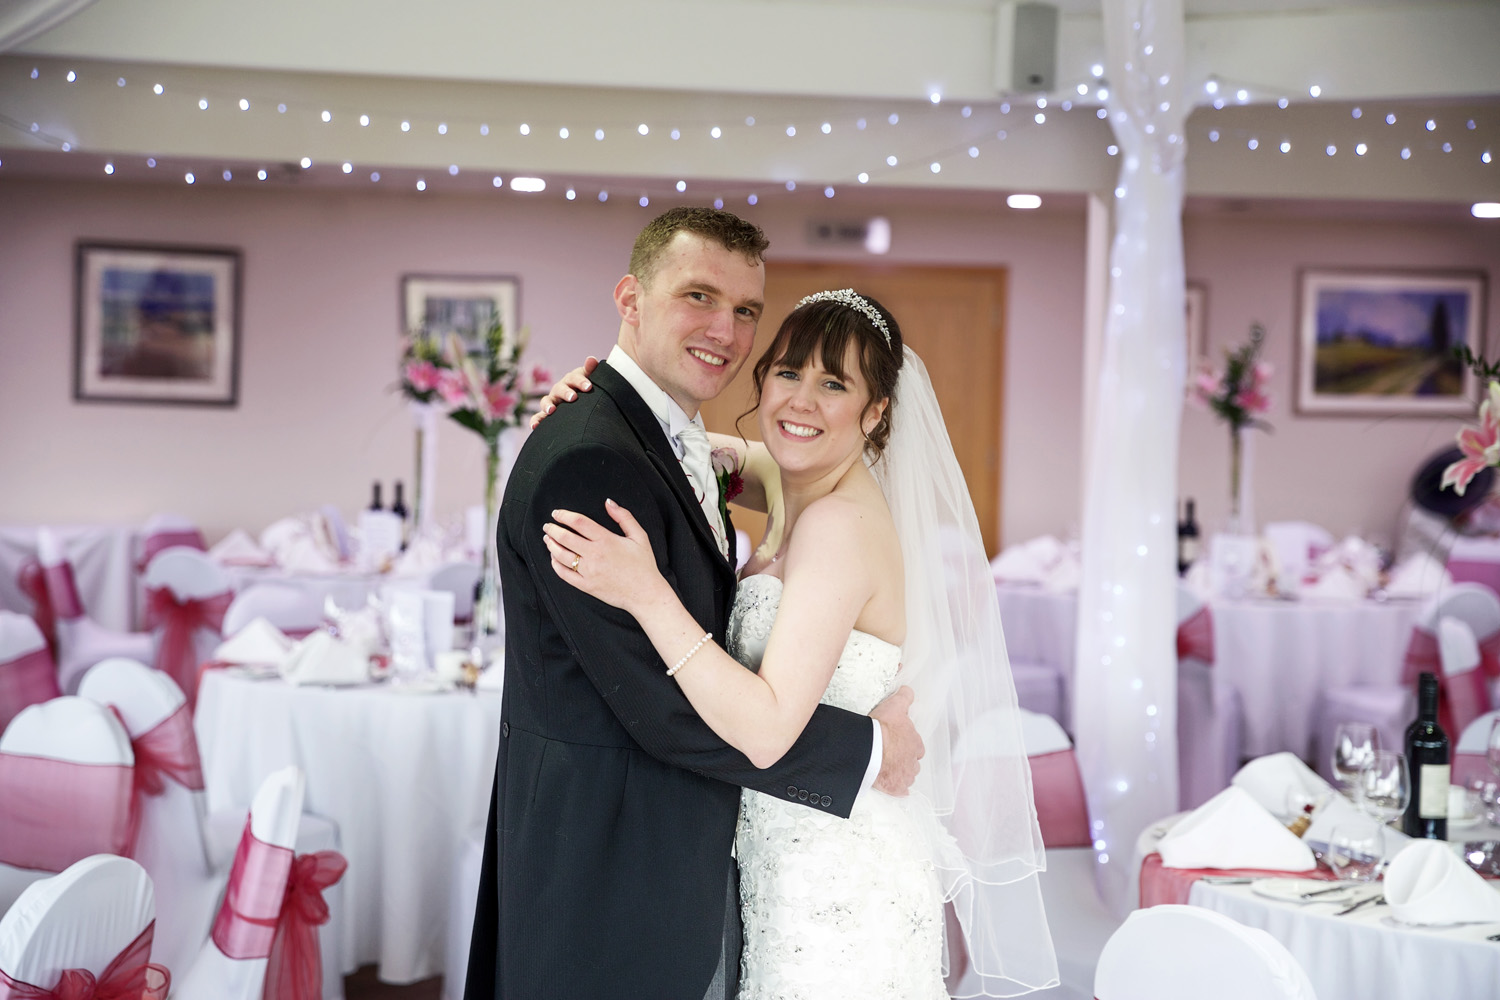 Sandford_Springs_Wedding_Photographer_Newbury_015.jpg